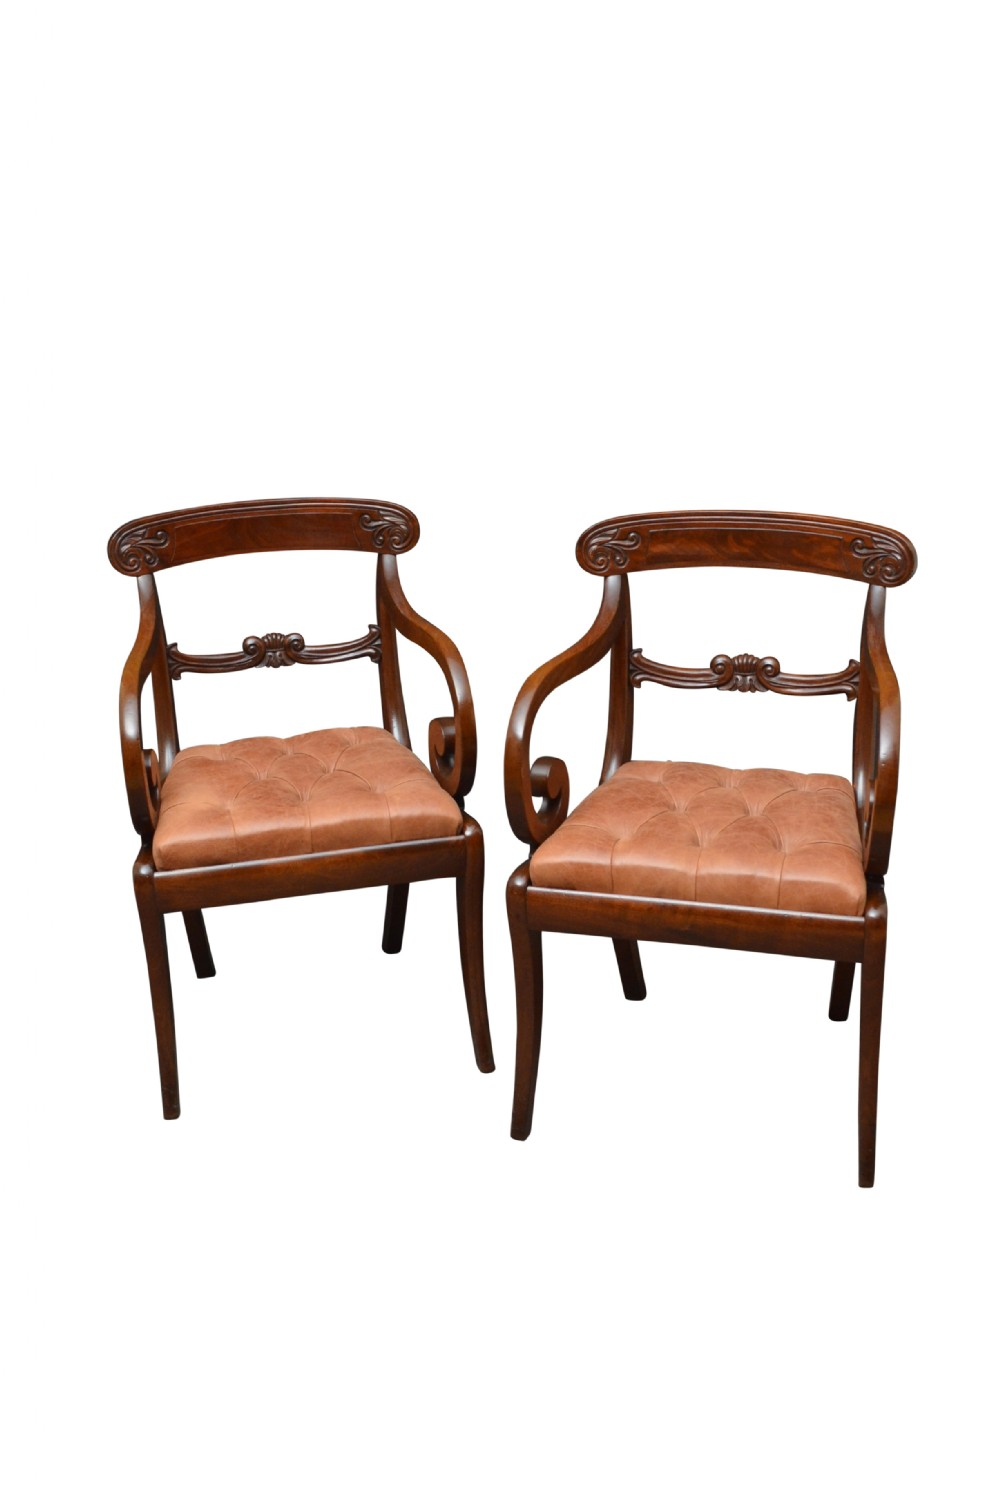 pair of william iv mahogany carver chairs desk chair office chair